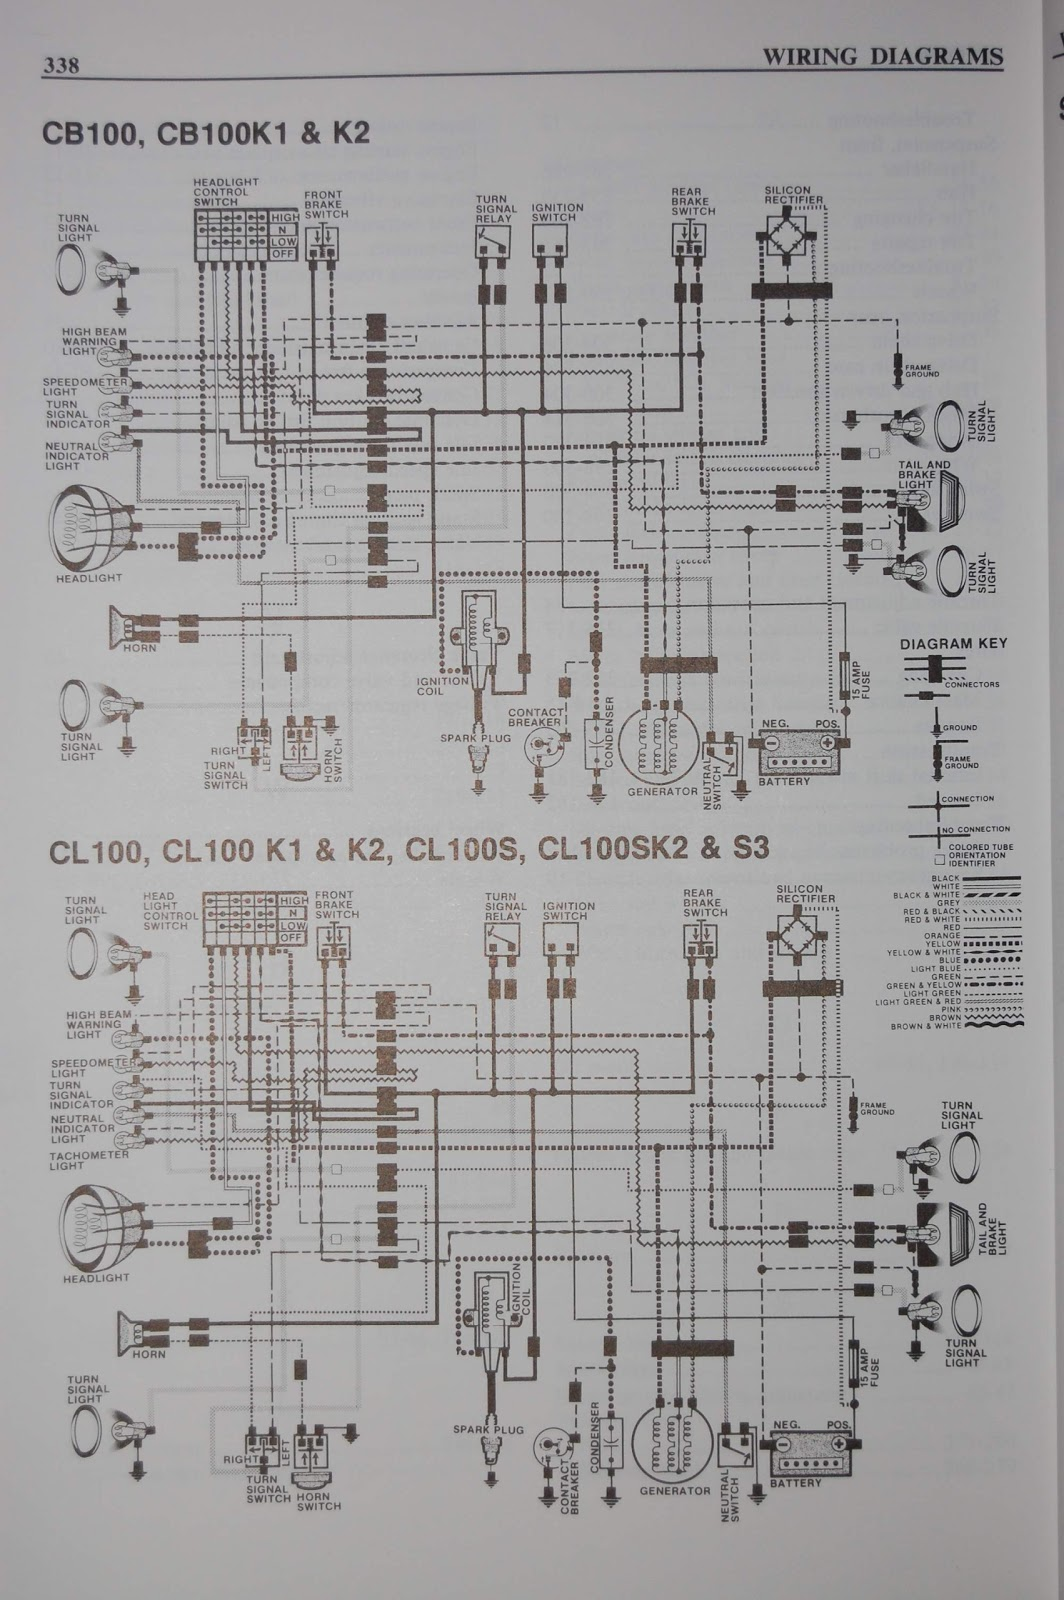 1967 Honda S90 Wiring Diagram Libraries Schematic 86 Cr125 Diagrams Scematichonda Library Harness